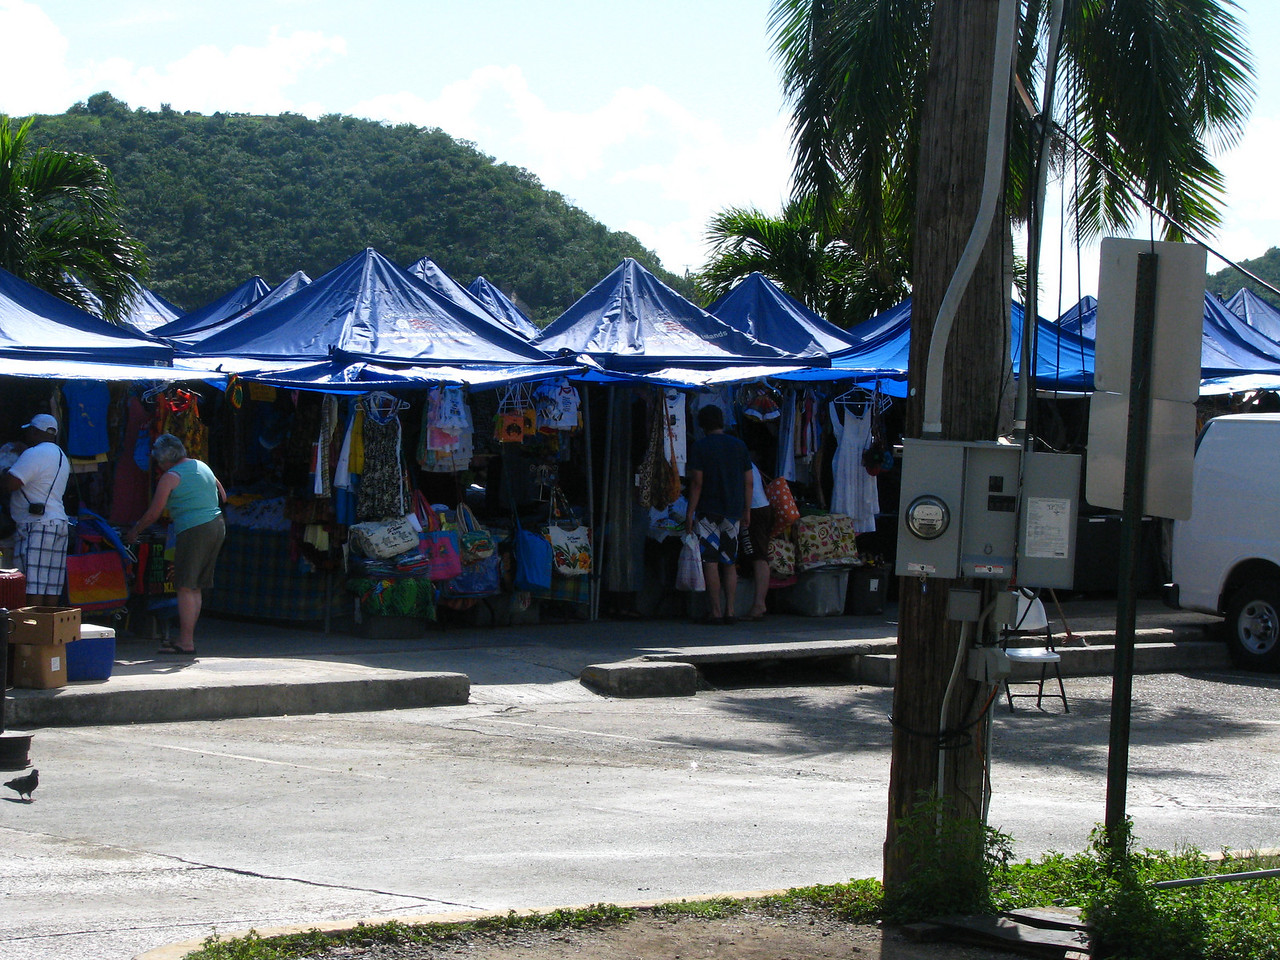 Another open air market